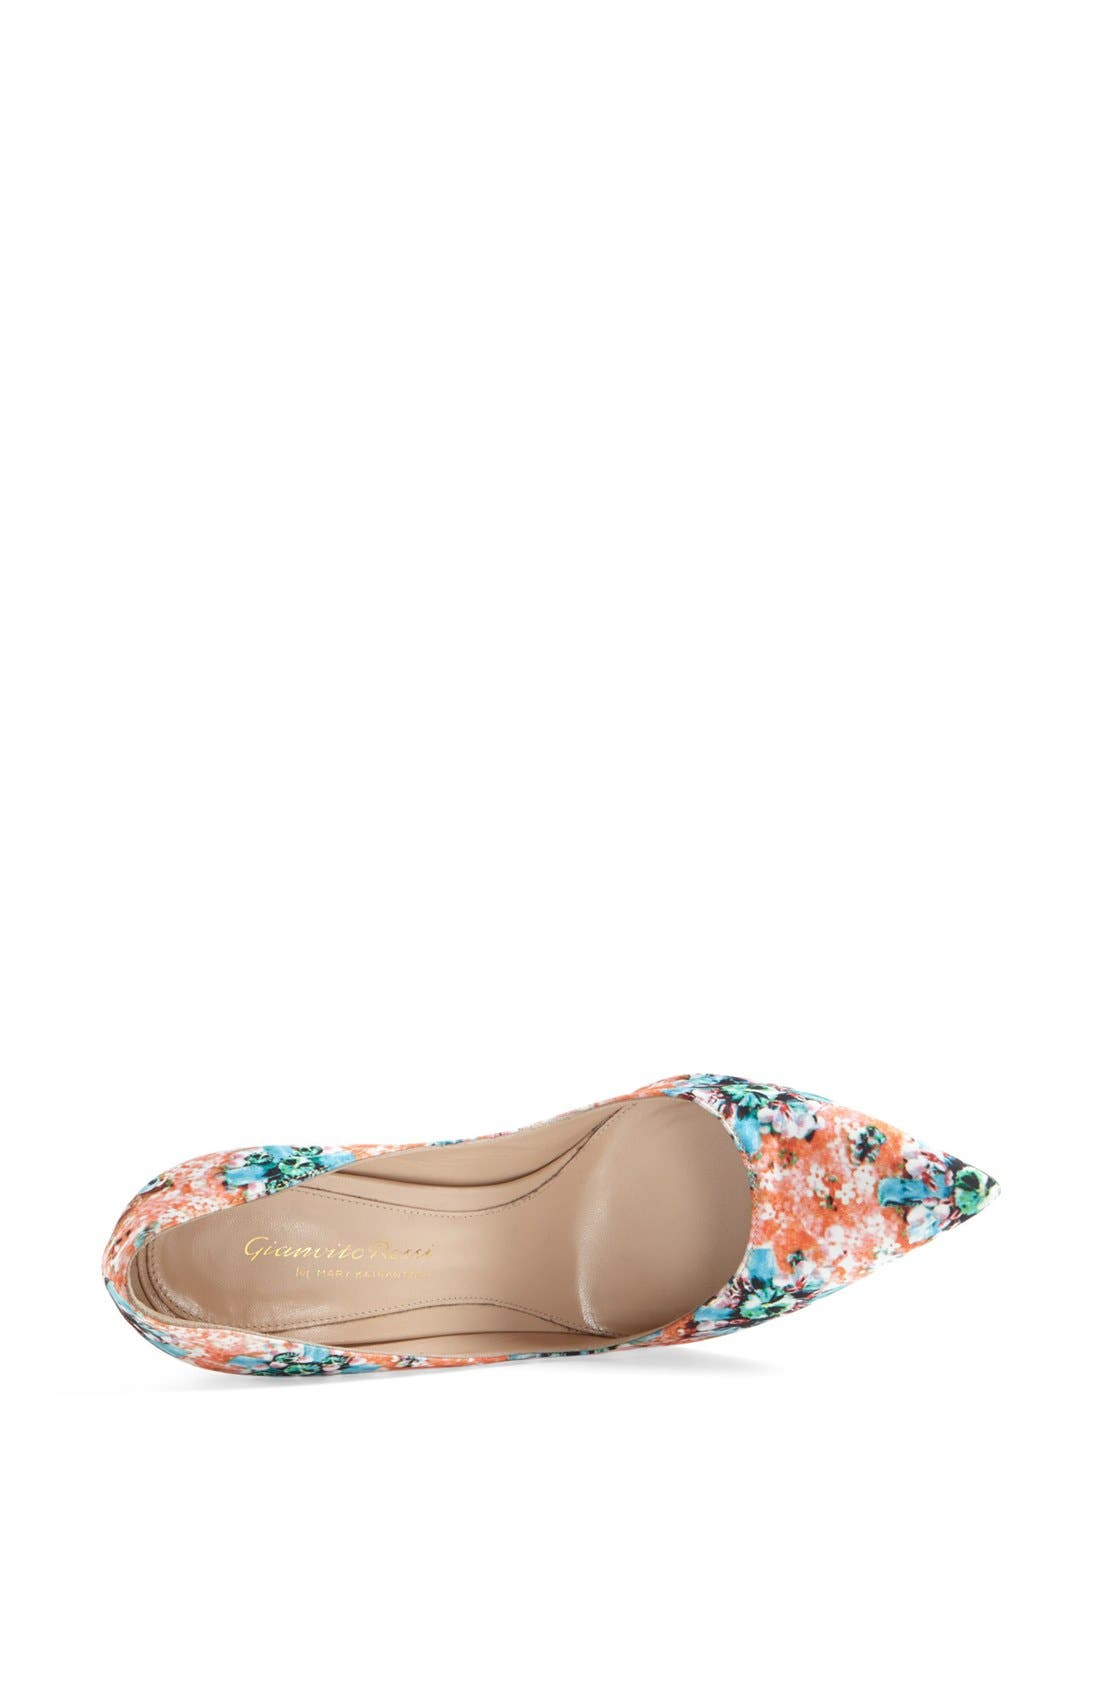 Alternate Image 3  - Mary Katrantzou 'Lisa' Pump